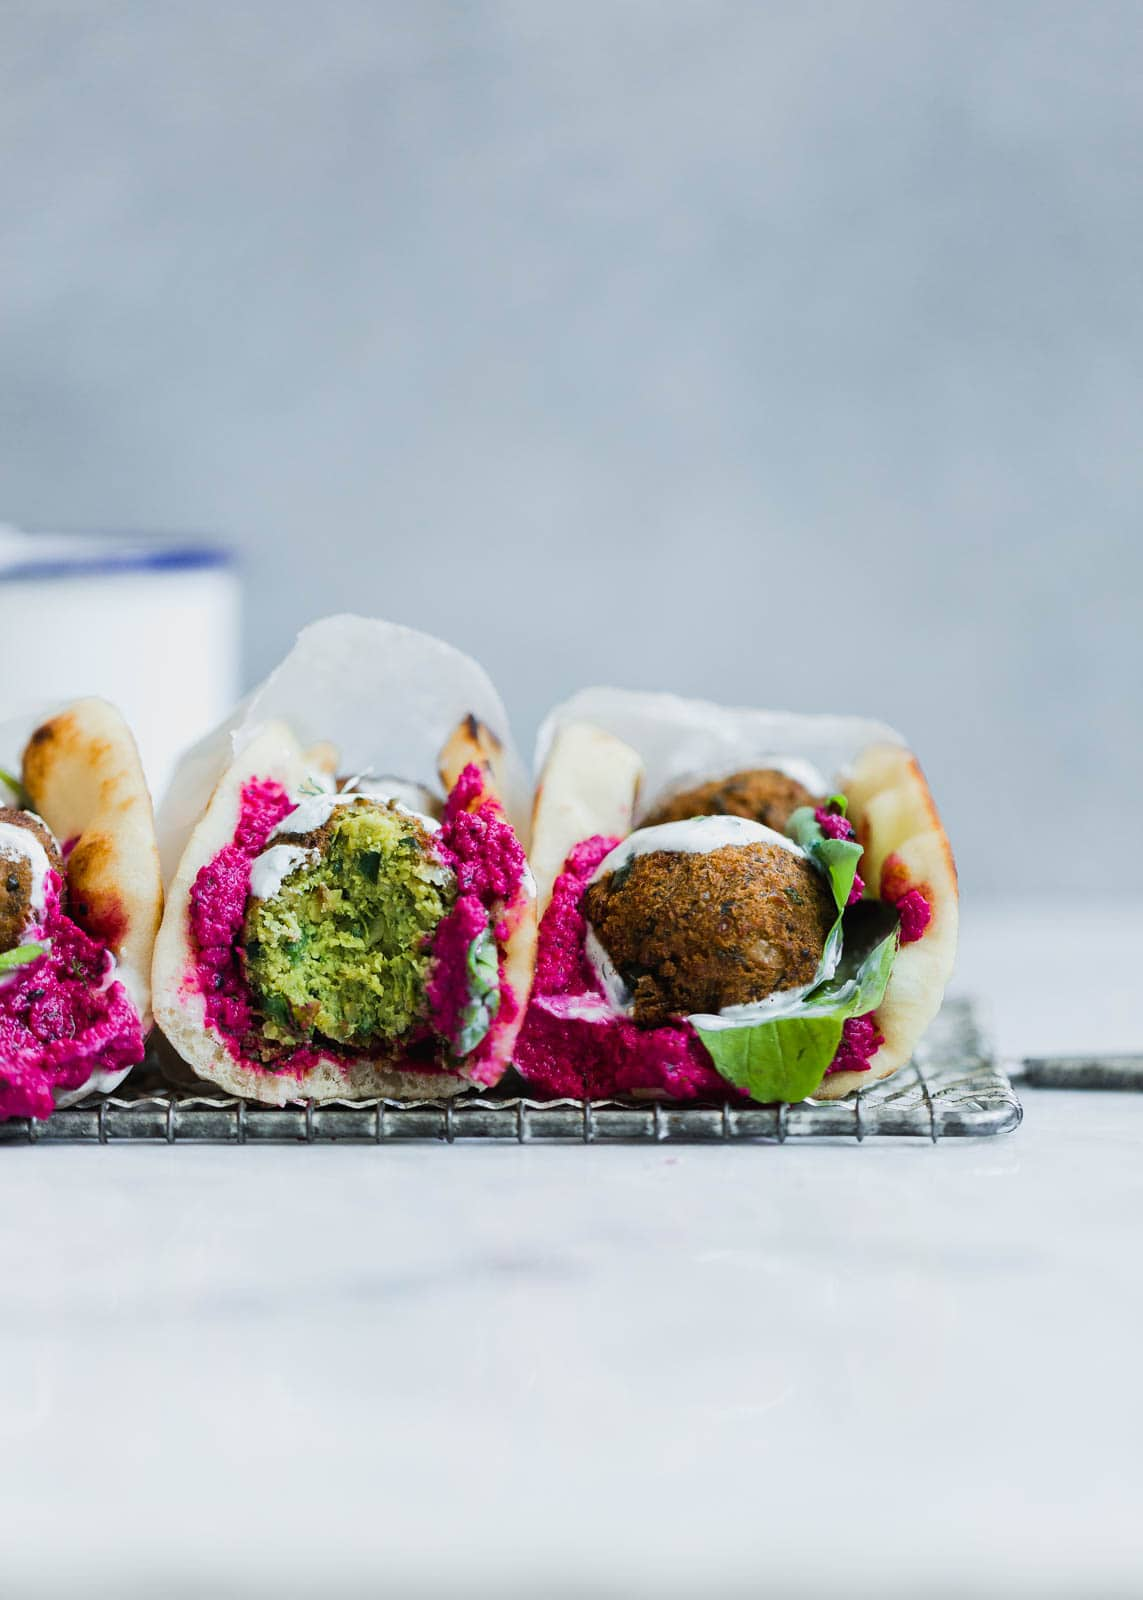 Green Falafel Sandwich with Beet Hummus - Broma Bakery